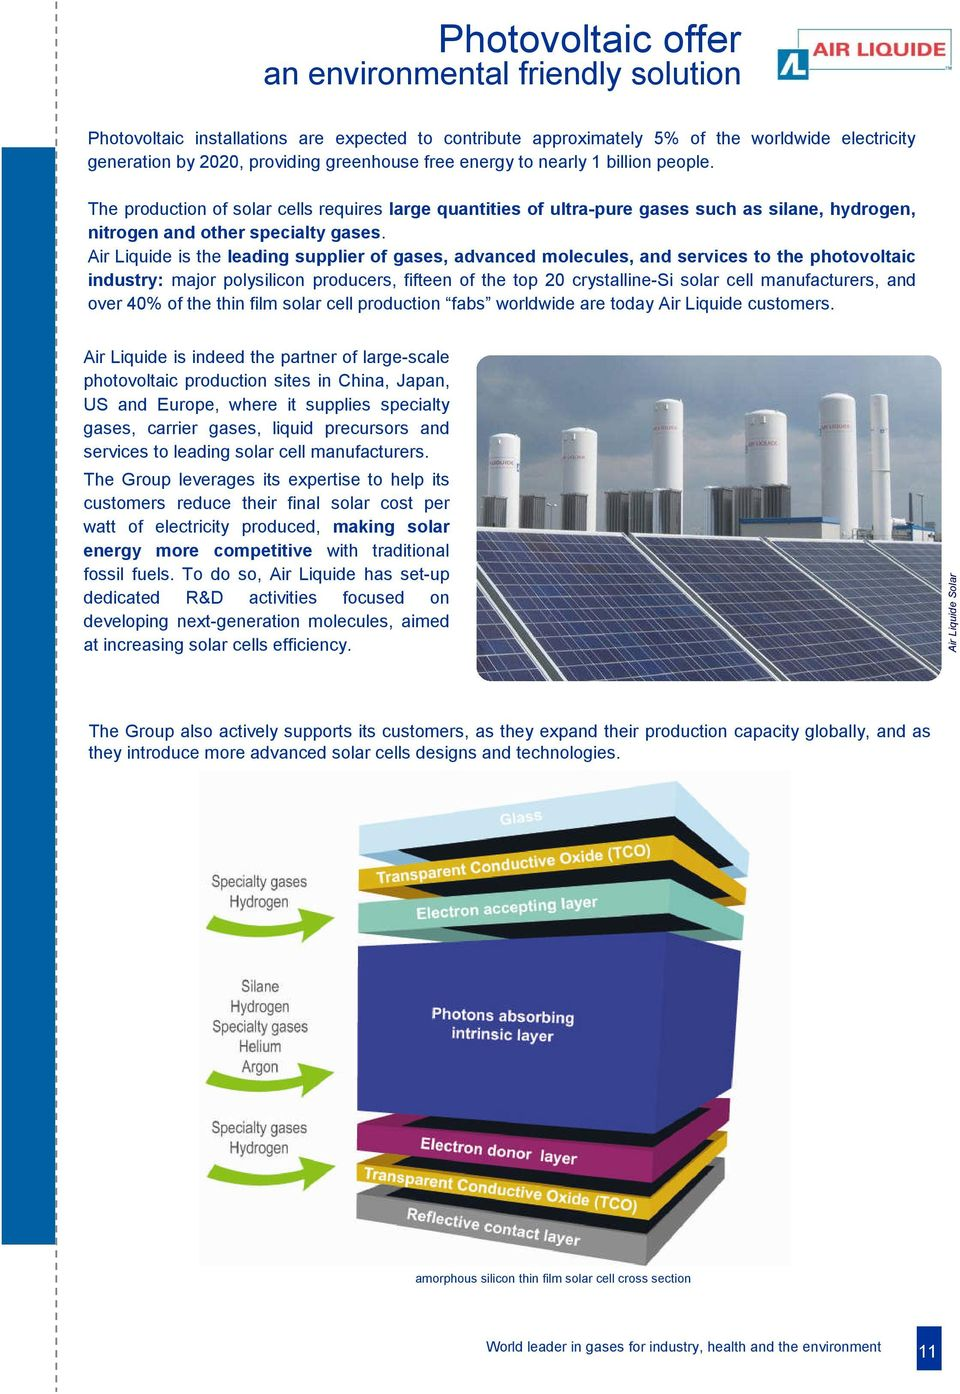 Air Liquide is the leading supplier of gases, advanced molecules, and services to the photovoltaic industry: major polysilicon producers, fifteen of the top 20 crystalline-si solar cell